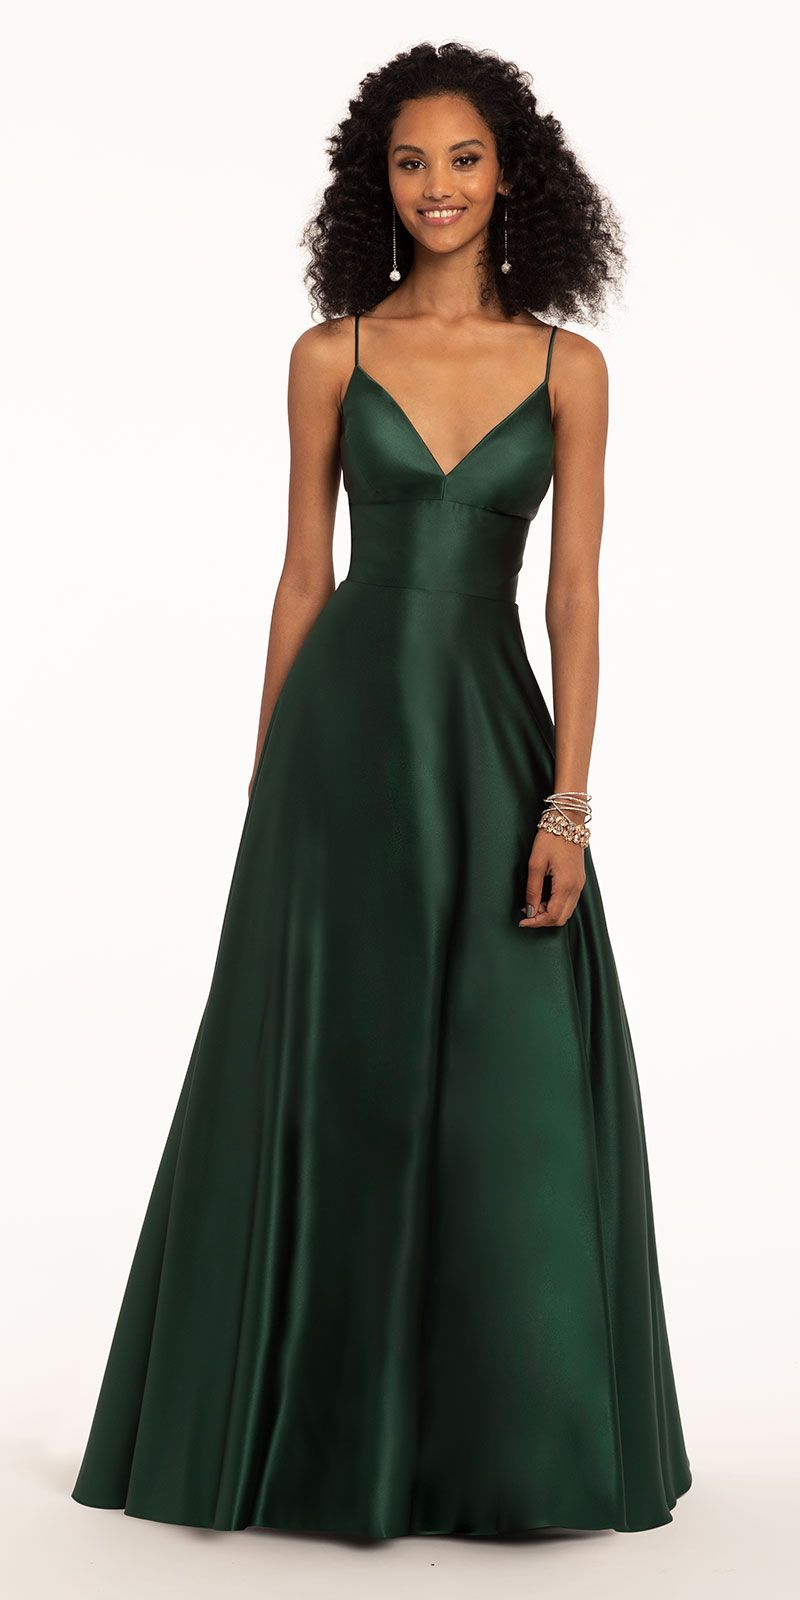 efe0d225ec30 Satin Spaghetti Slip Ball Gown from Camille La Vie and Group USA